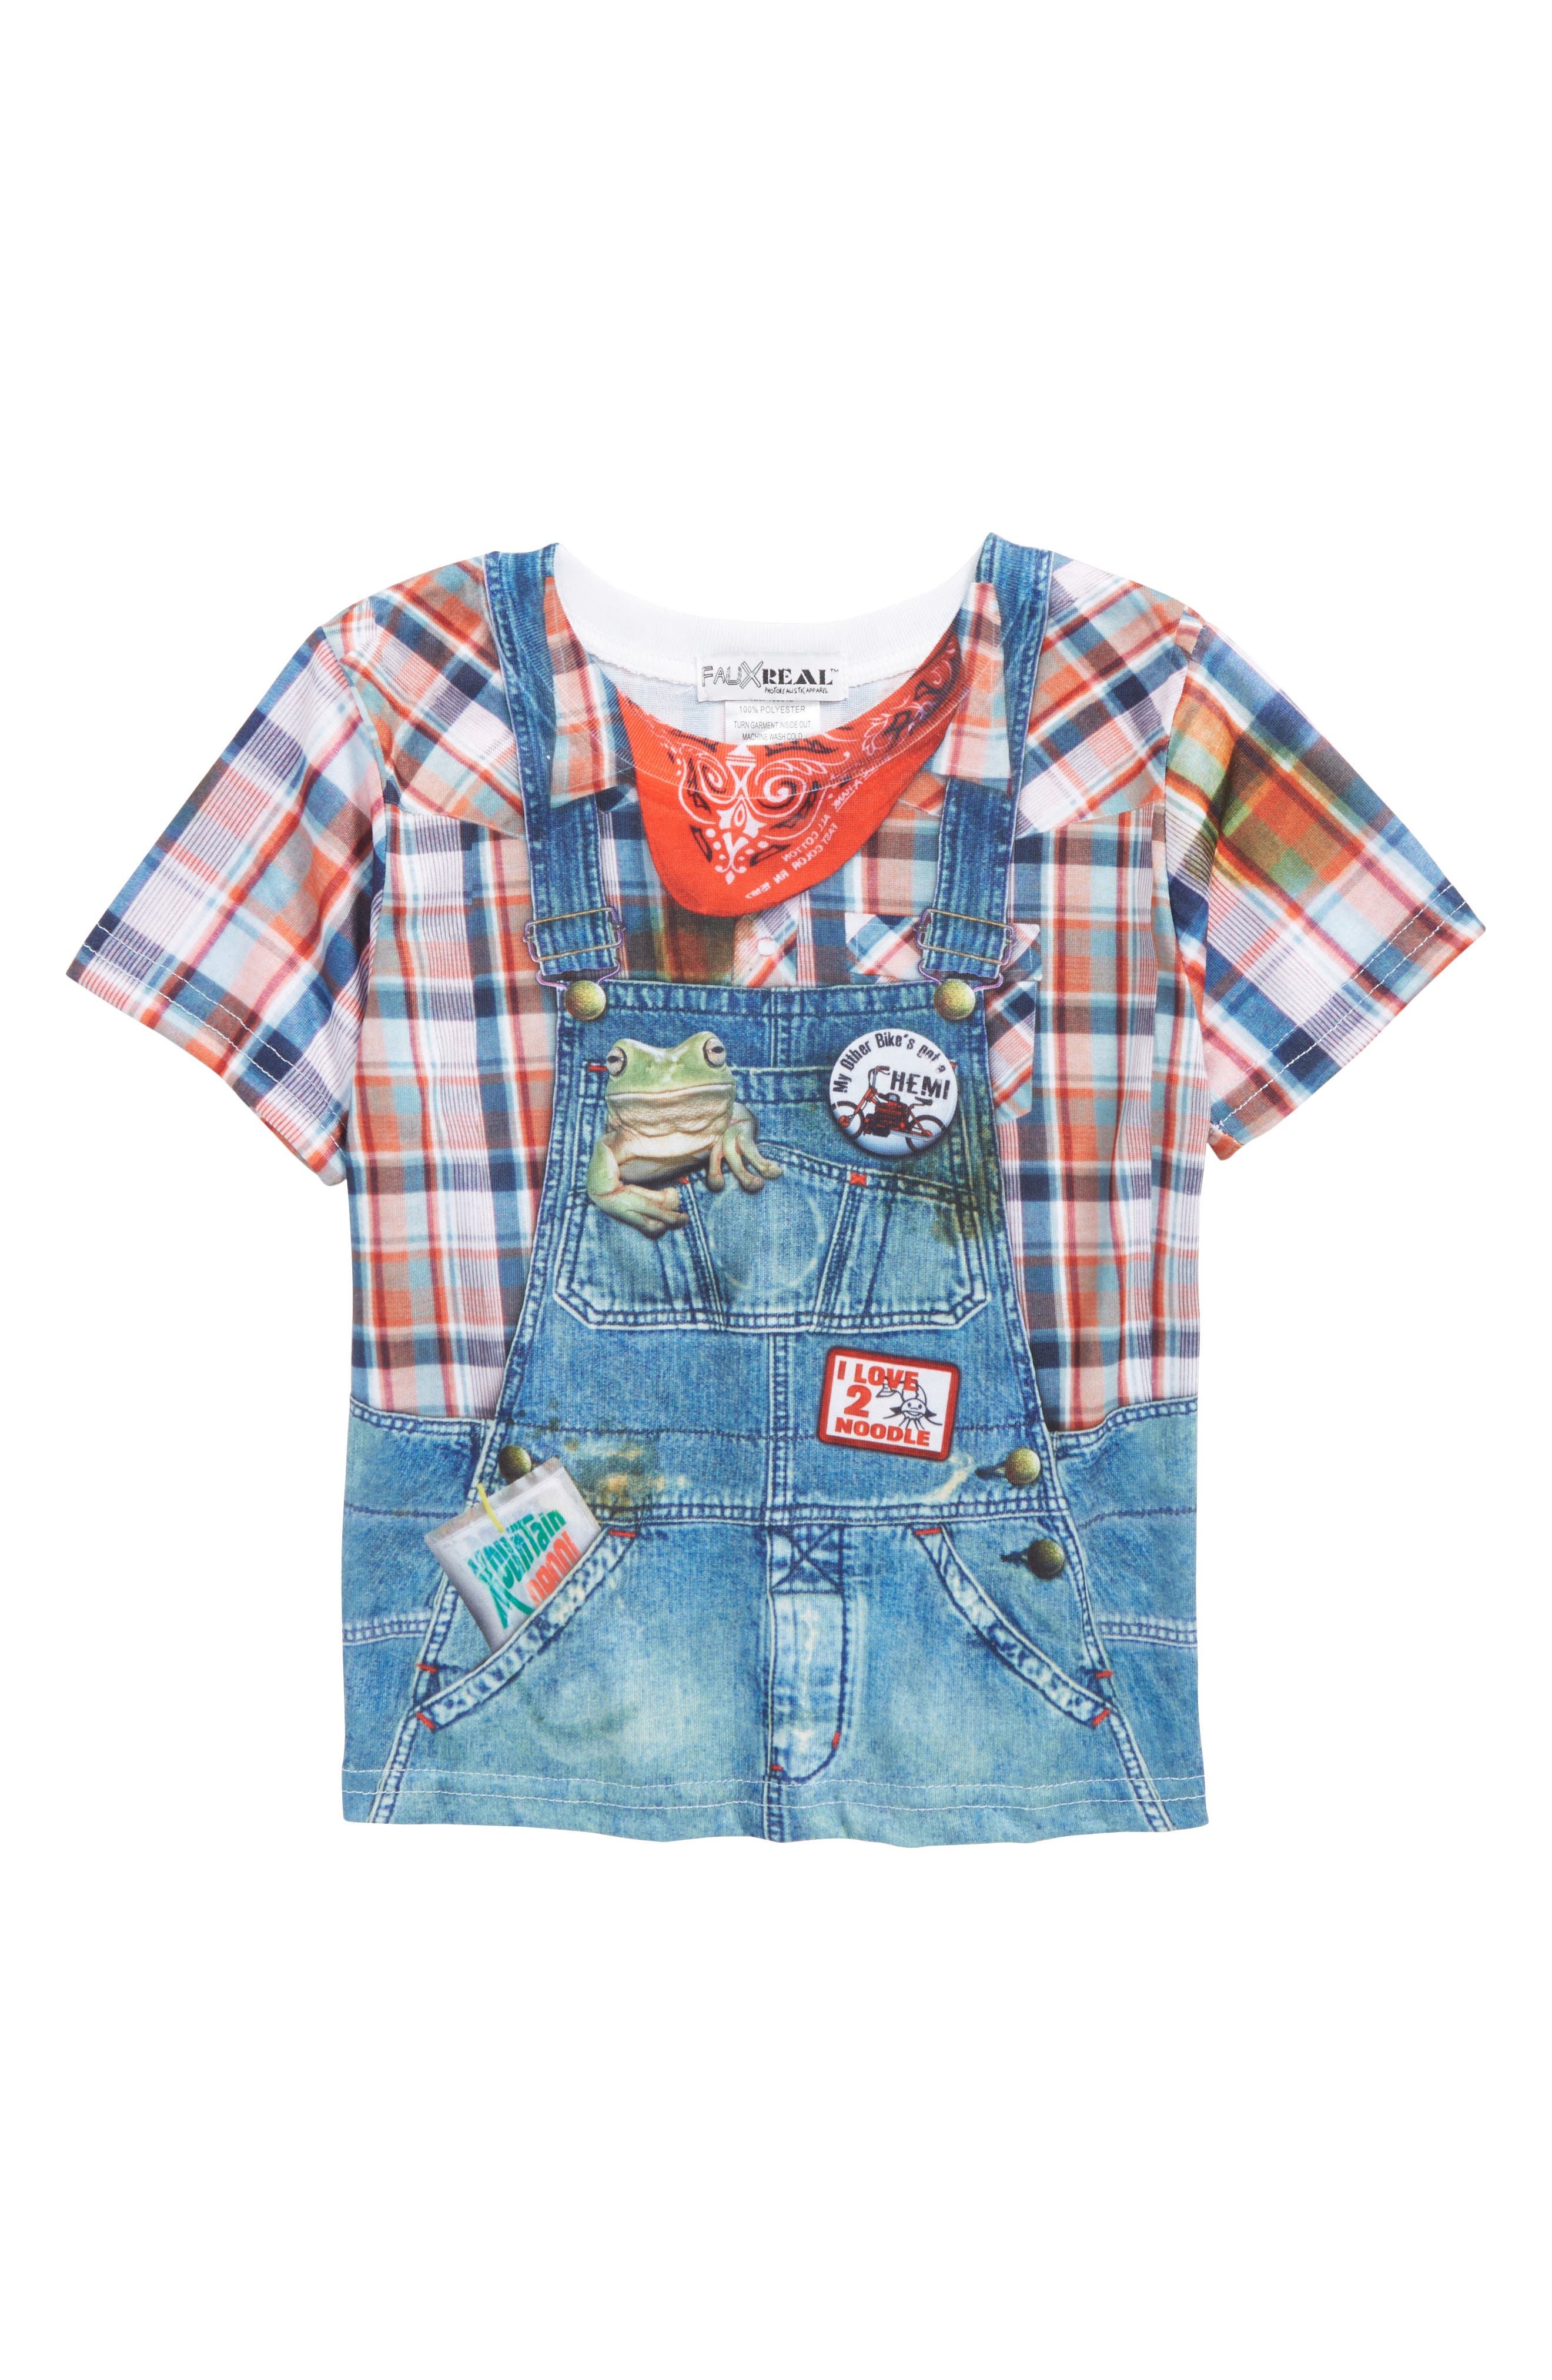 Main Image - Faux Real Country Kid T-Shirt (Toddler Boys)